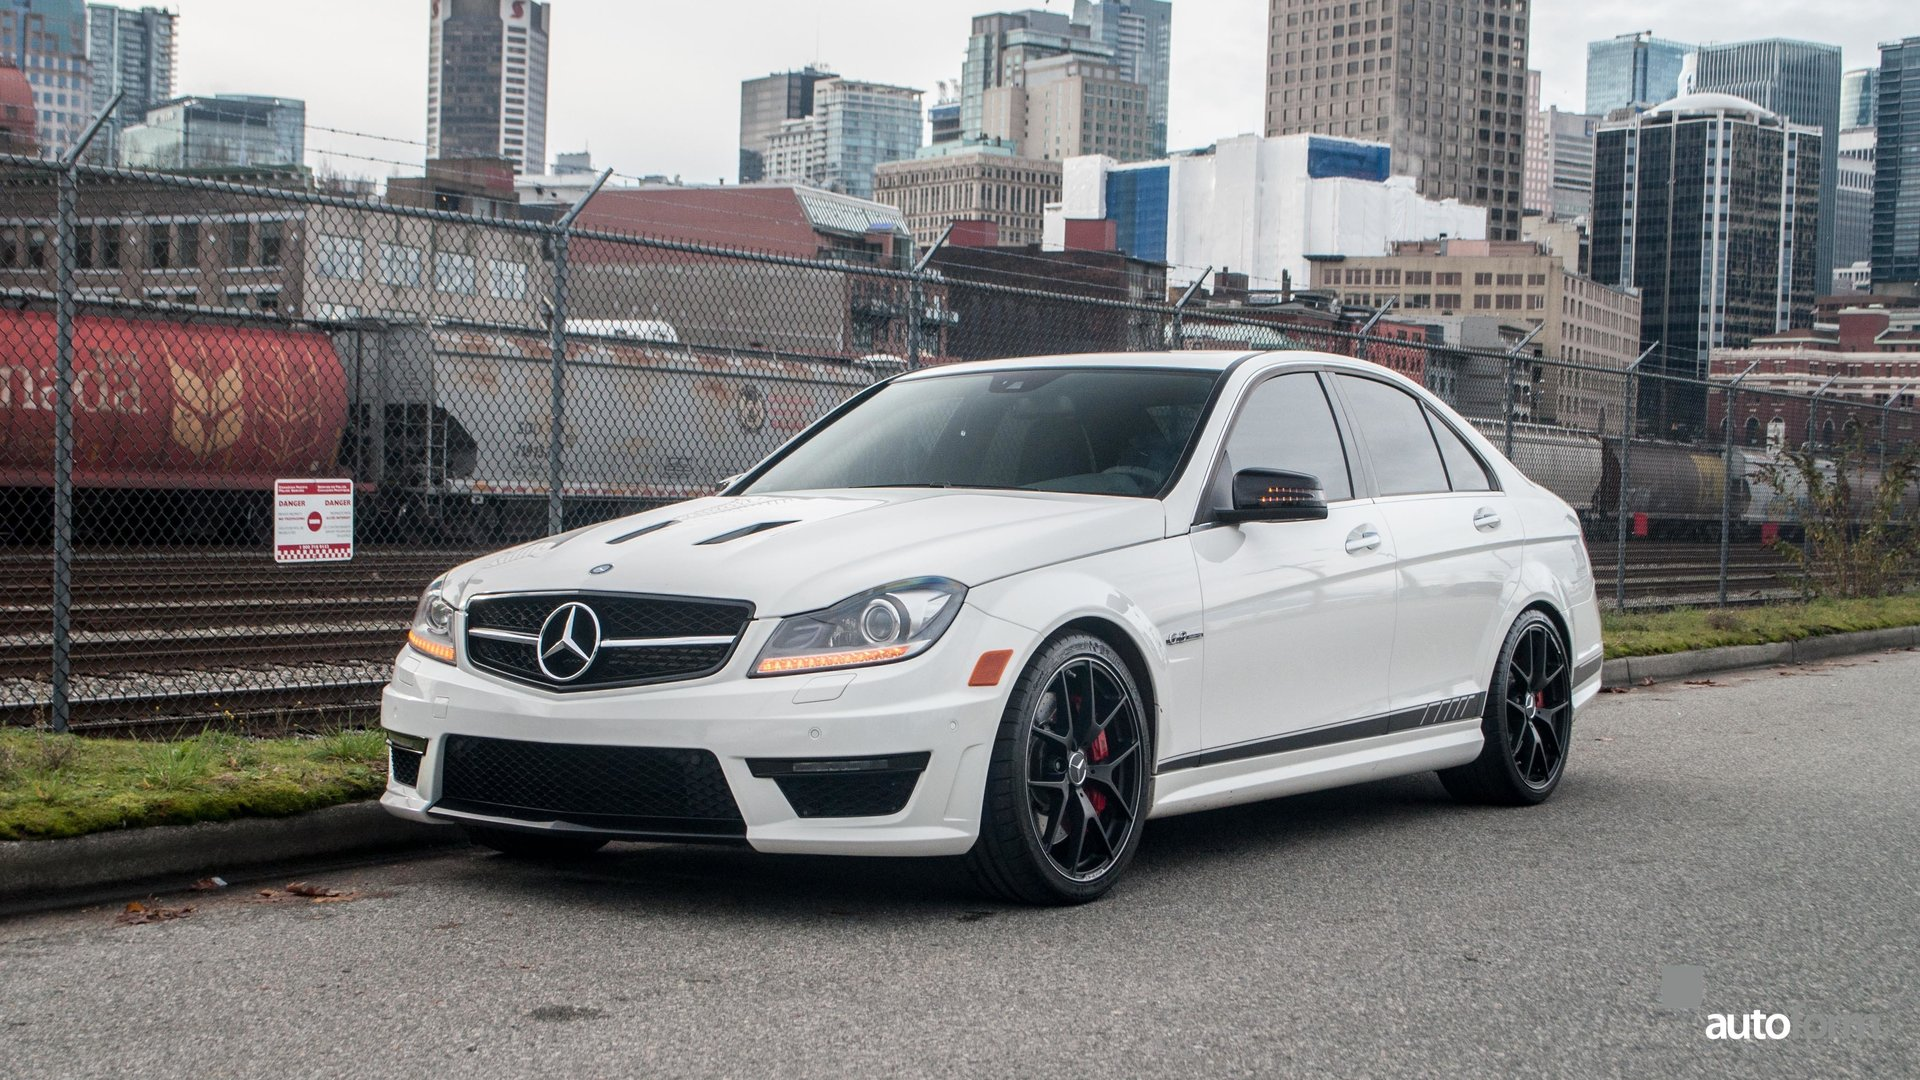 2014 mercedes benz c63 amg 507 edition autoform for Mercedes benz emergency number